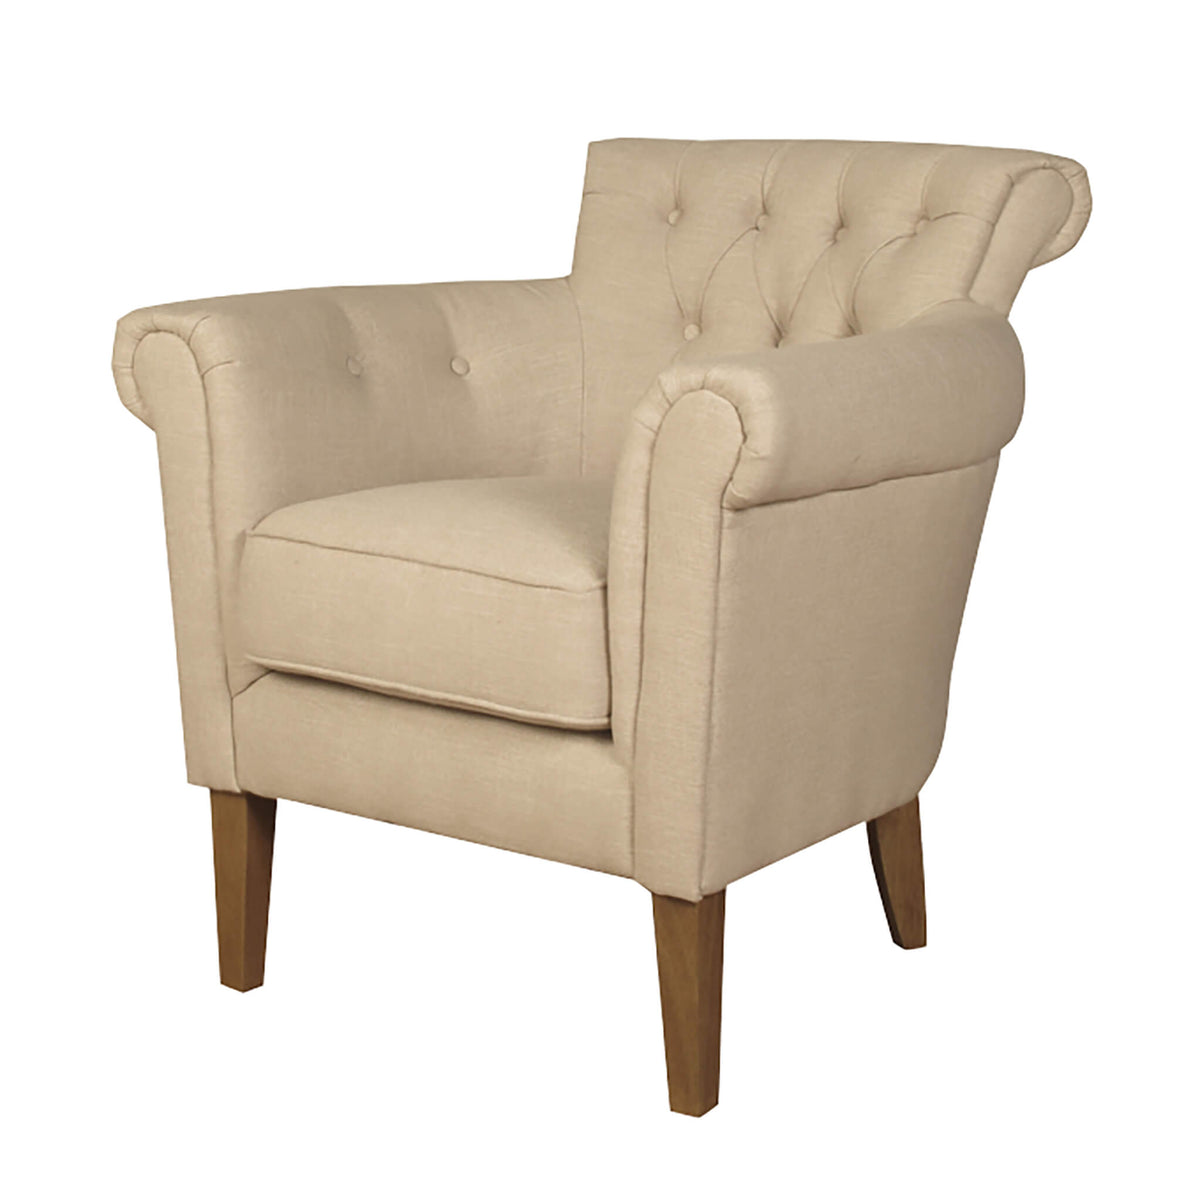 Finchley Beige Armchairs